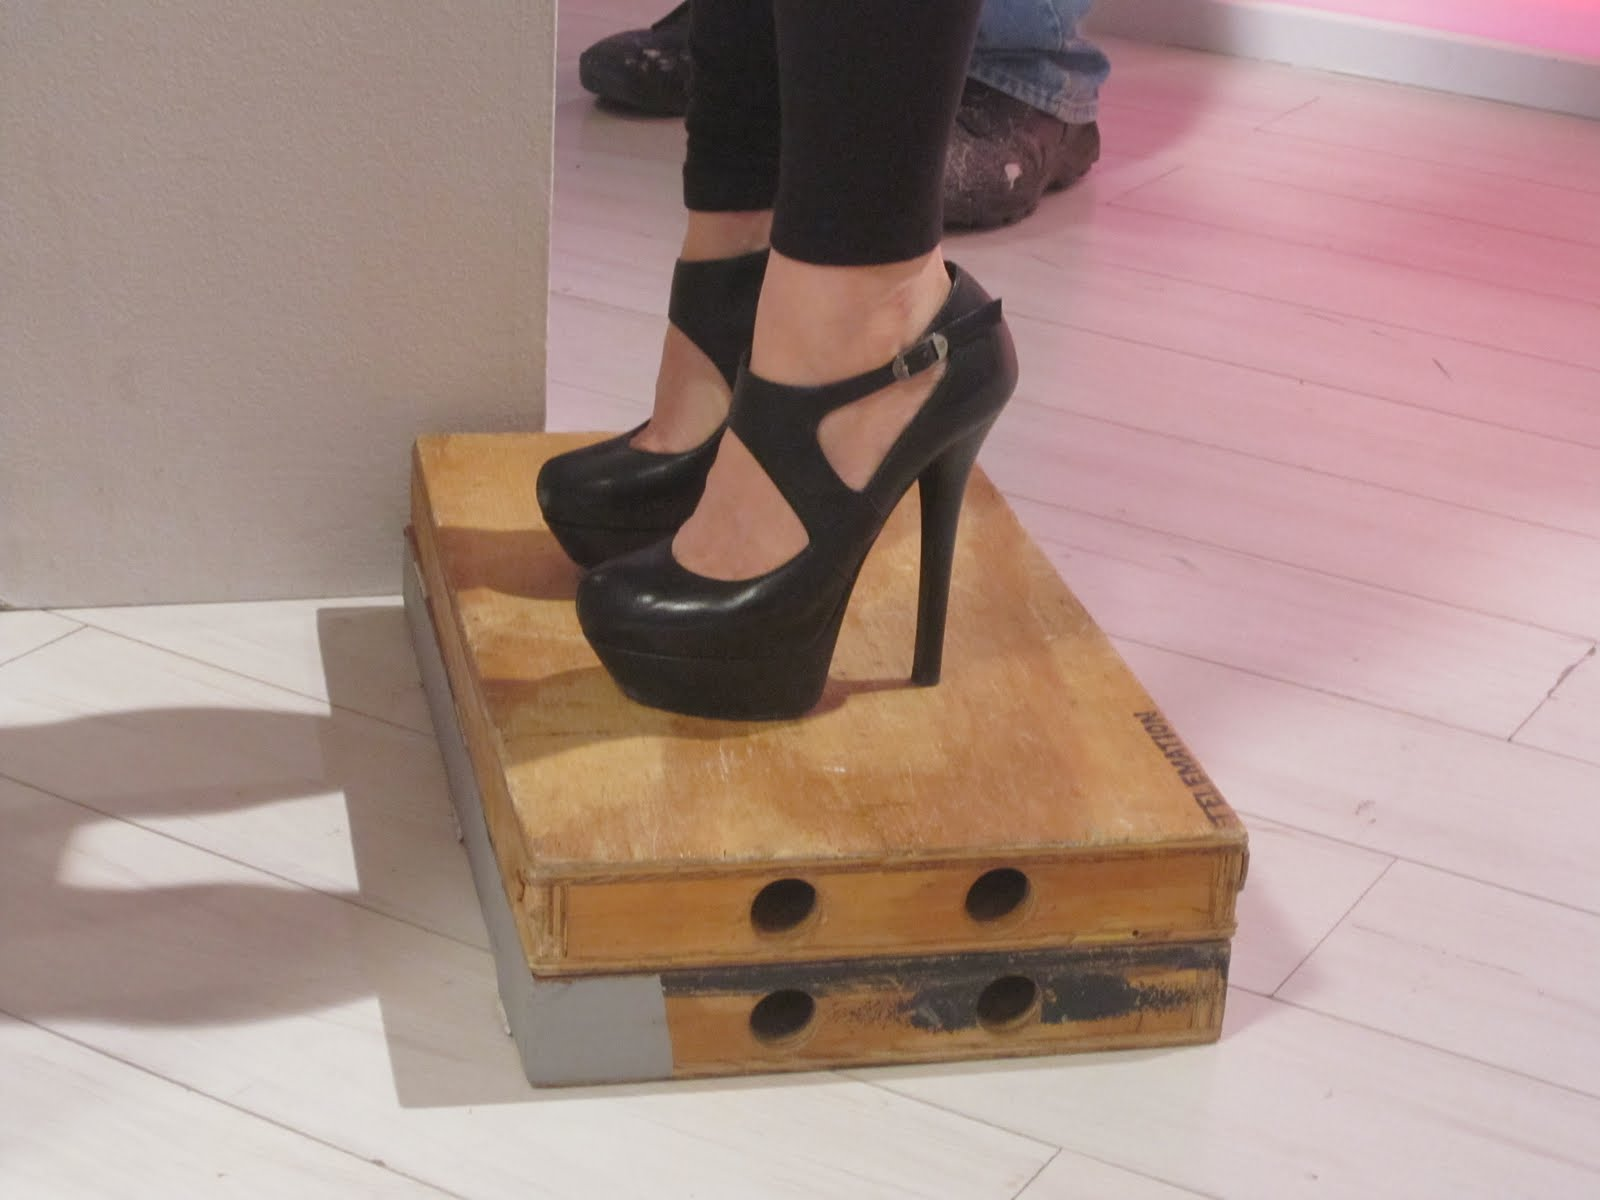 Hsn Shoes For Sale